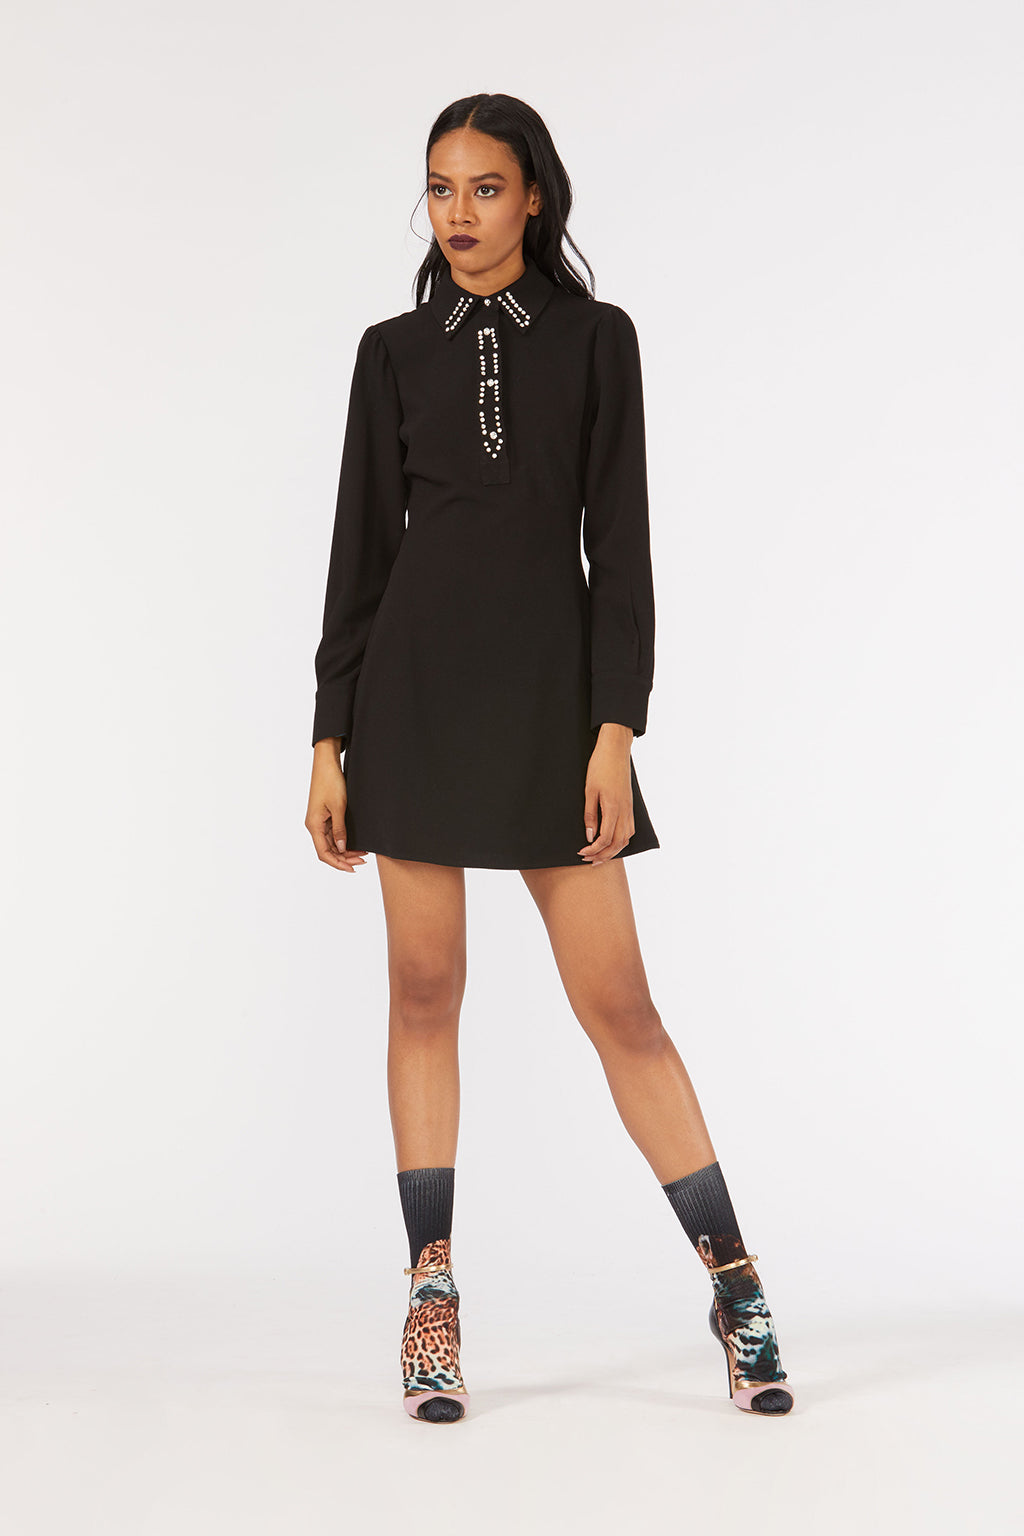 Cynthia Rowley Fall 2018 look 26 featuring a black long sleeve shirt dress with rhinestone embellishments.